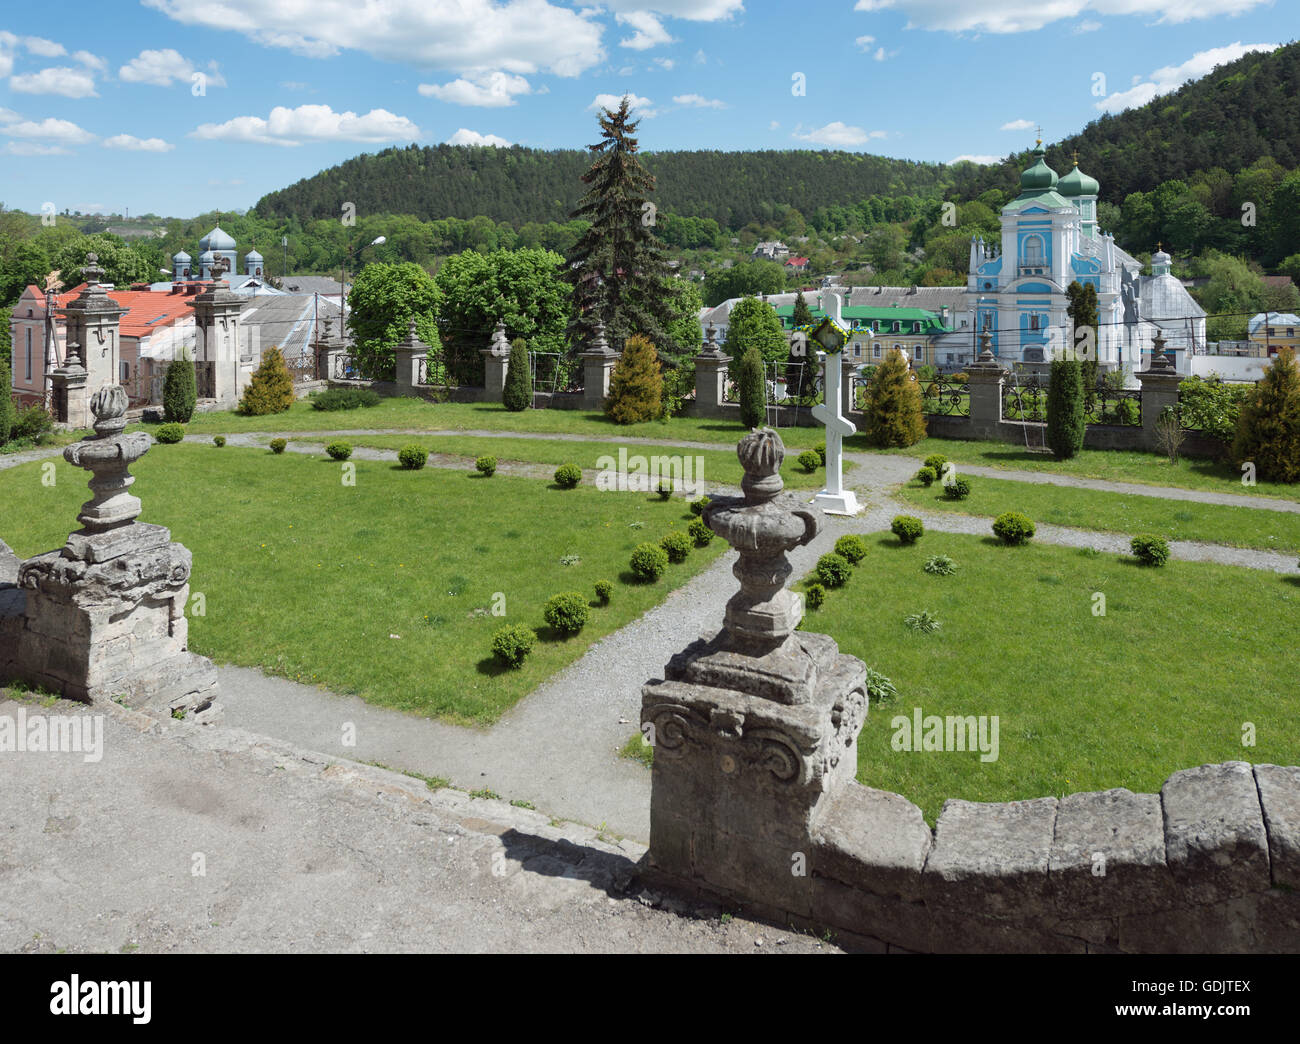 Travel companies of Ternopil and region: a selection of sites